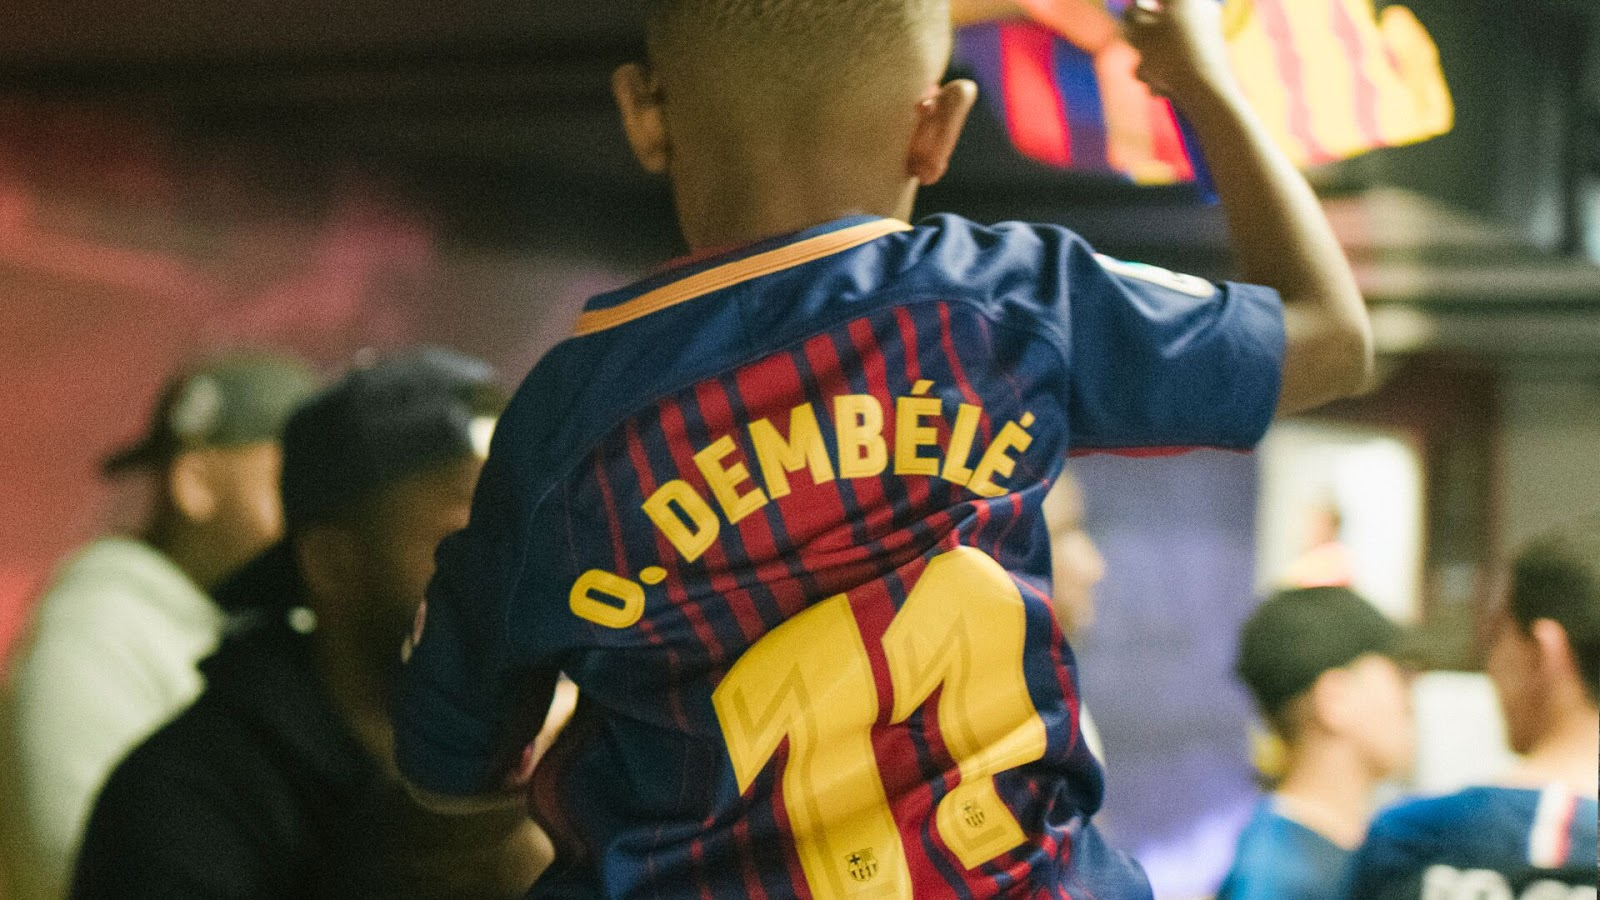 1257e0cf075 The portrait also looks at Dembélé s humble beginnings and the role he  plays in his community